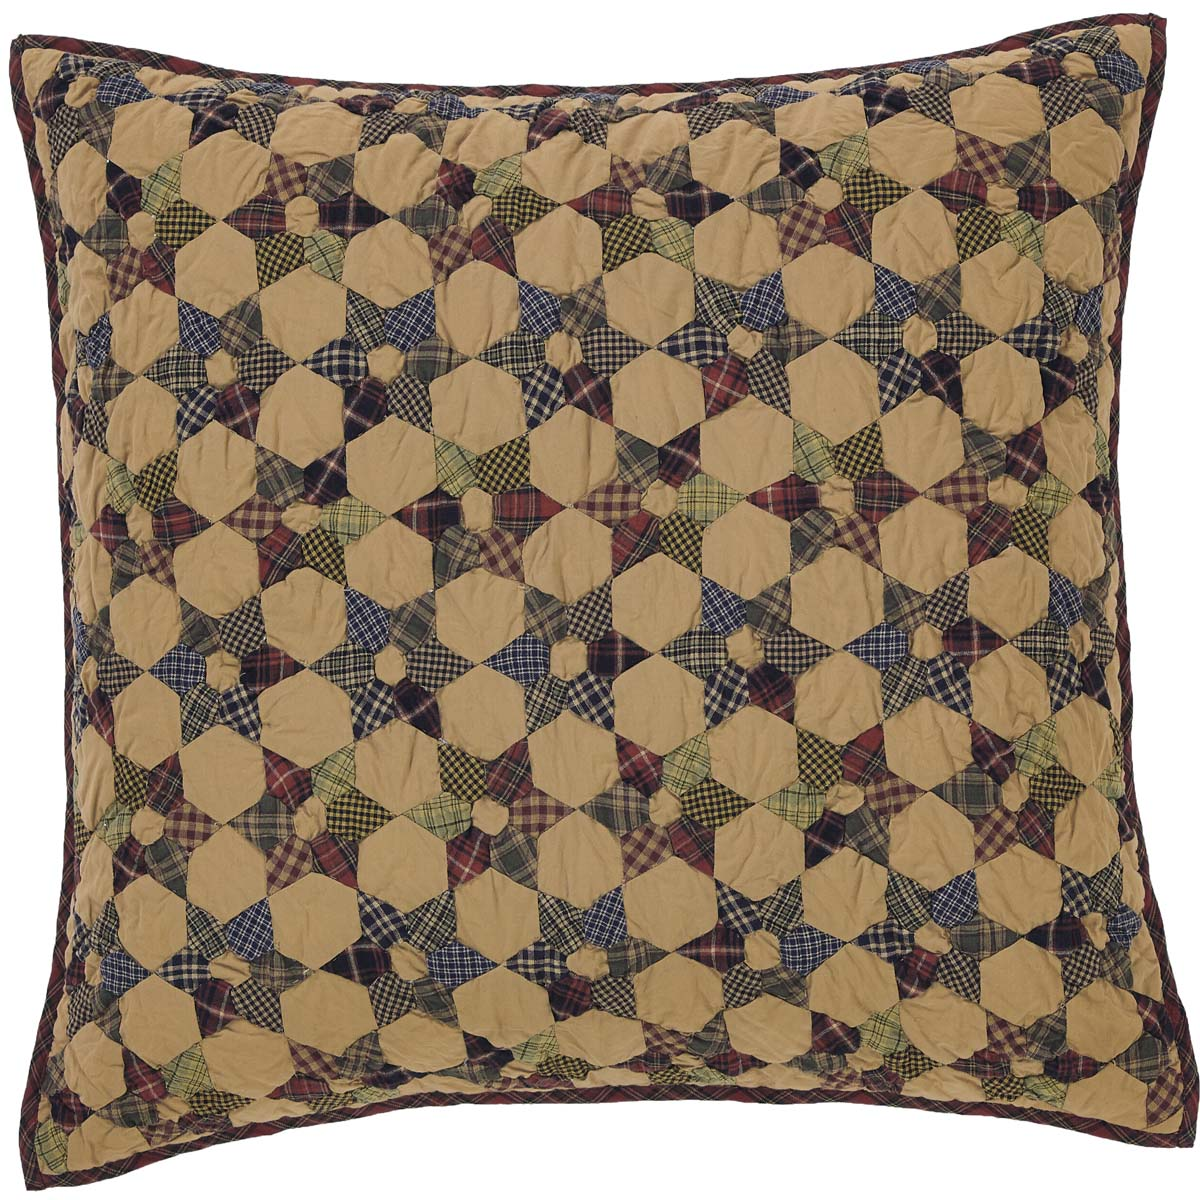 Dark Tan Primitive Bedding Kilton Star Cotton Hand Quilted Patchwork Star Euro Sham